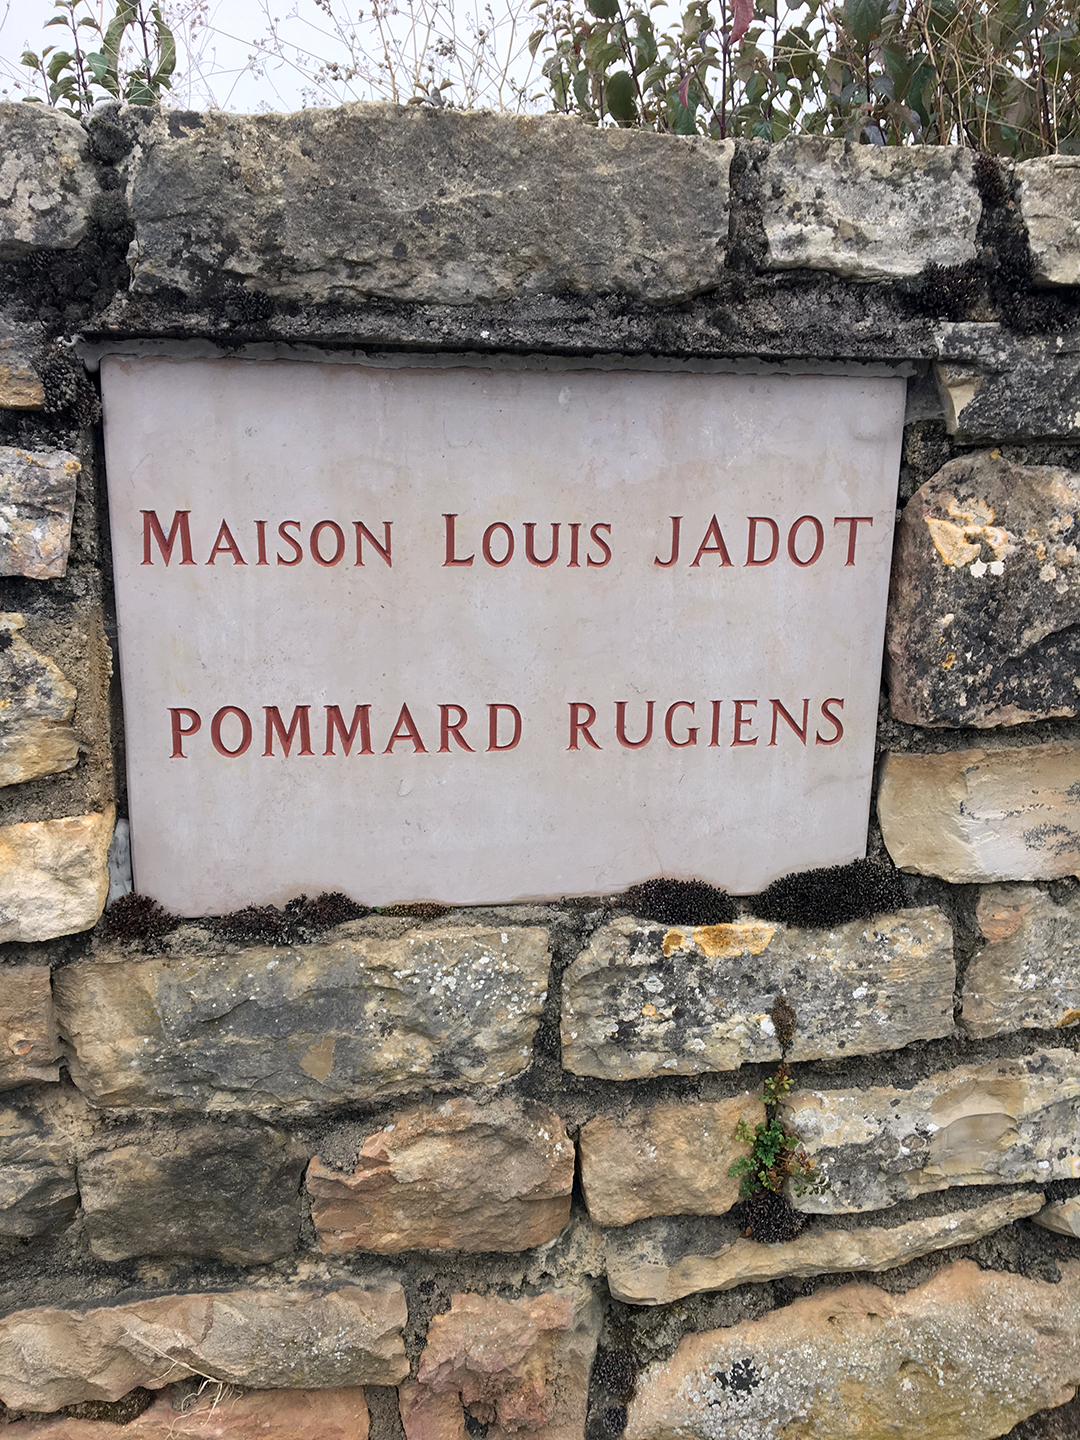 Stone nameplate MAISON LOUIS JADOT POMMARD RUGIENS on a stone wall